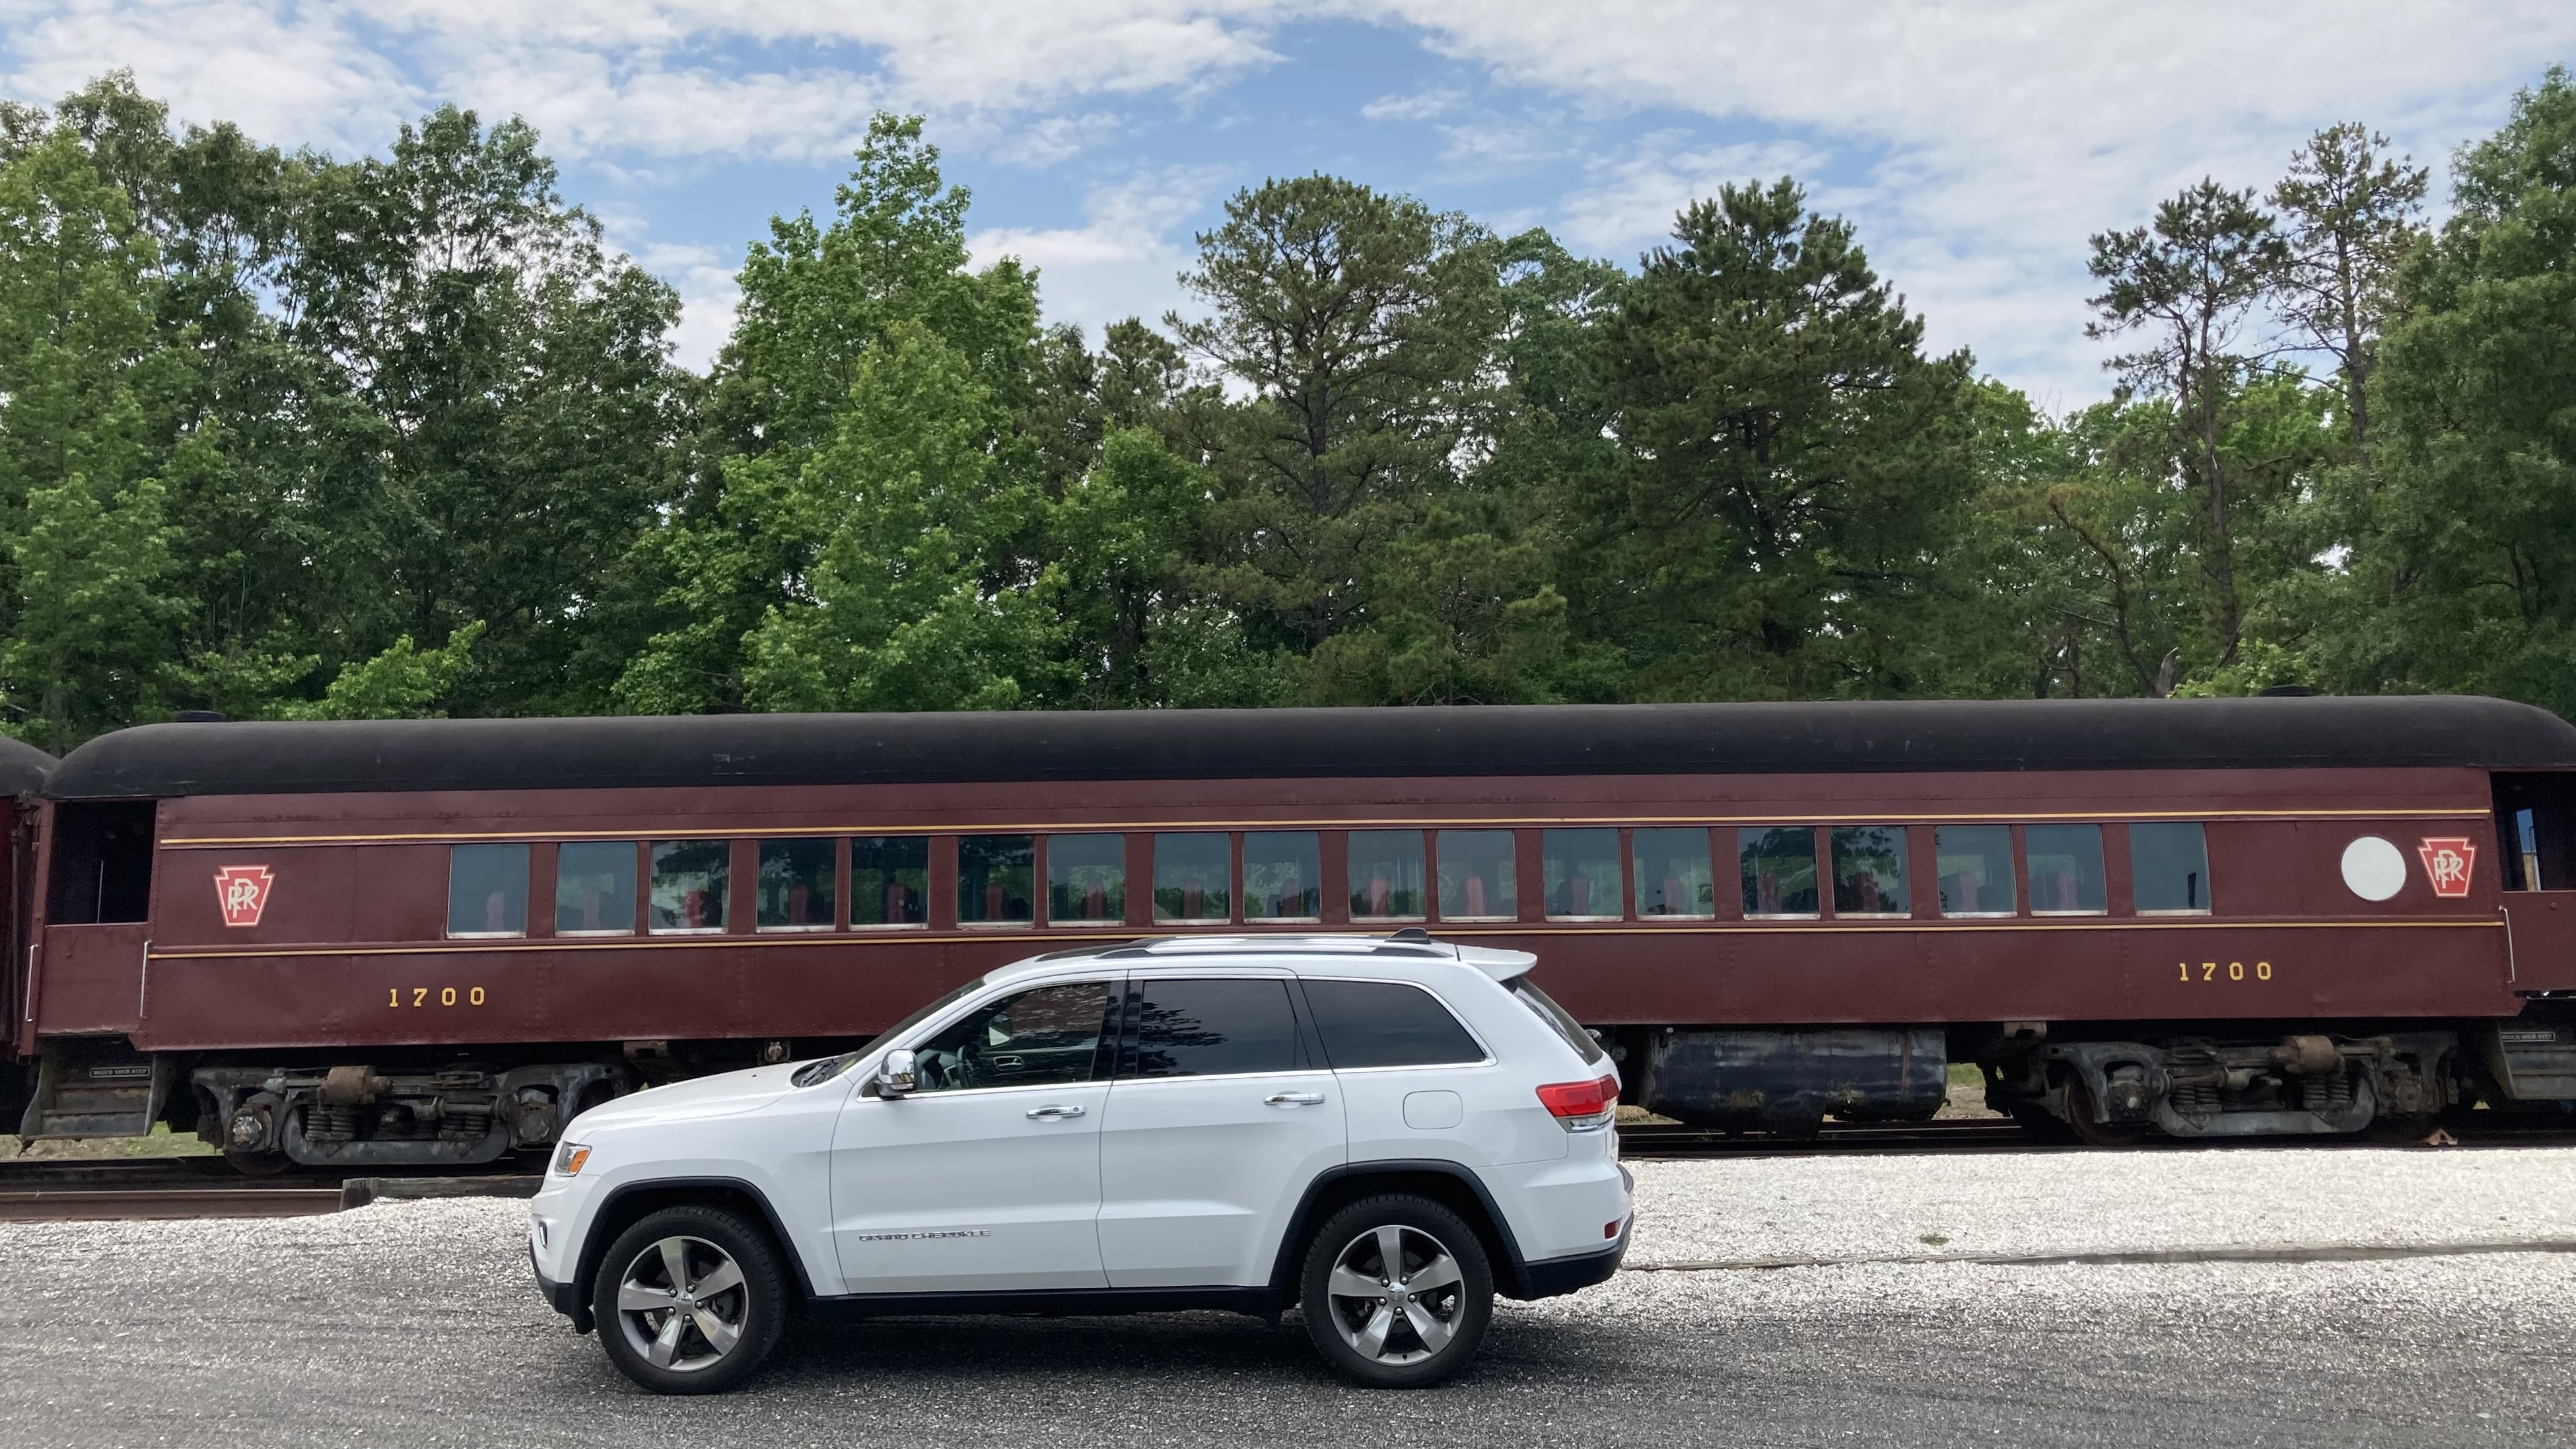 White Jeep Grand Cherokee parked in front of train passenger car in train yard.